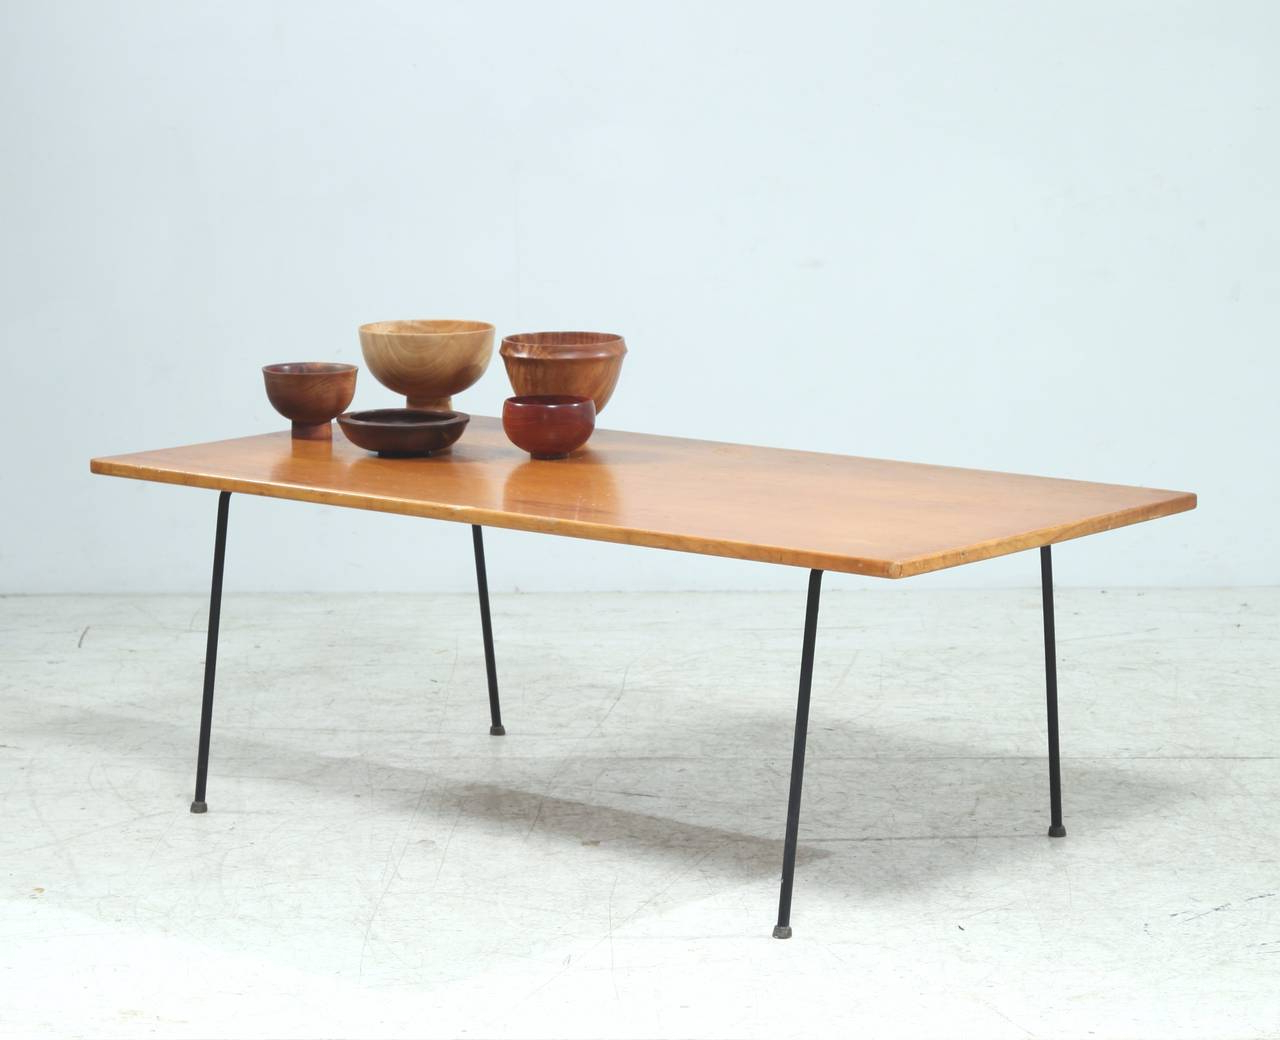 Minimalist Arden Riddle Coffee Table For Sale At 1Stdibs Regarding 2019 Minimalist Coffee Tables (View 7 of 20)